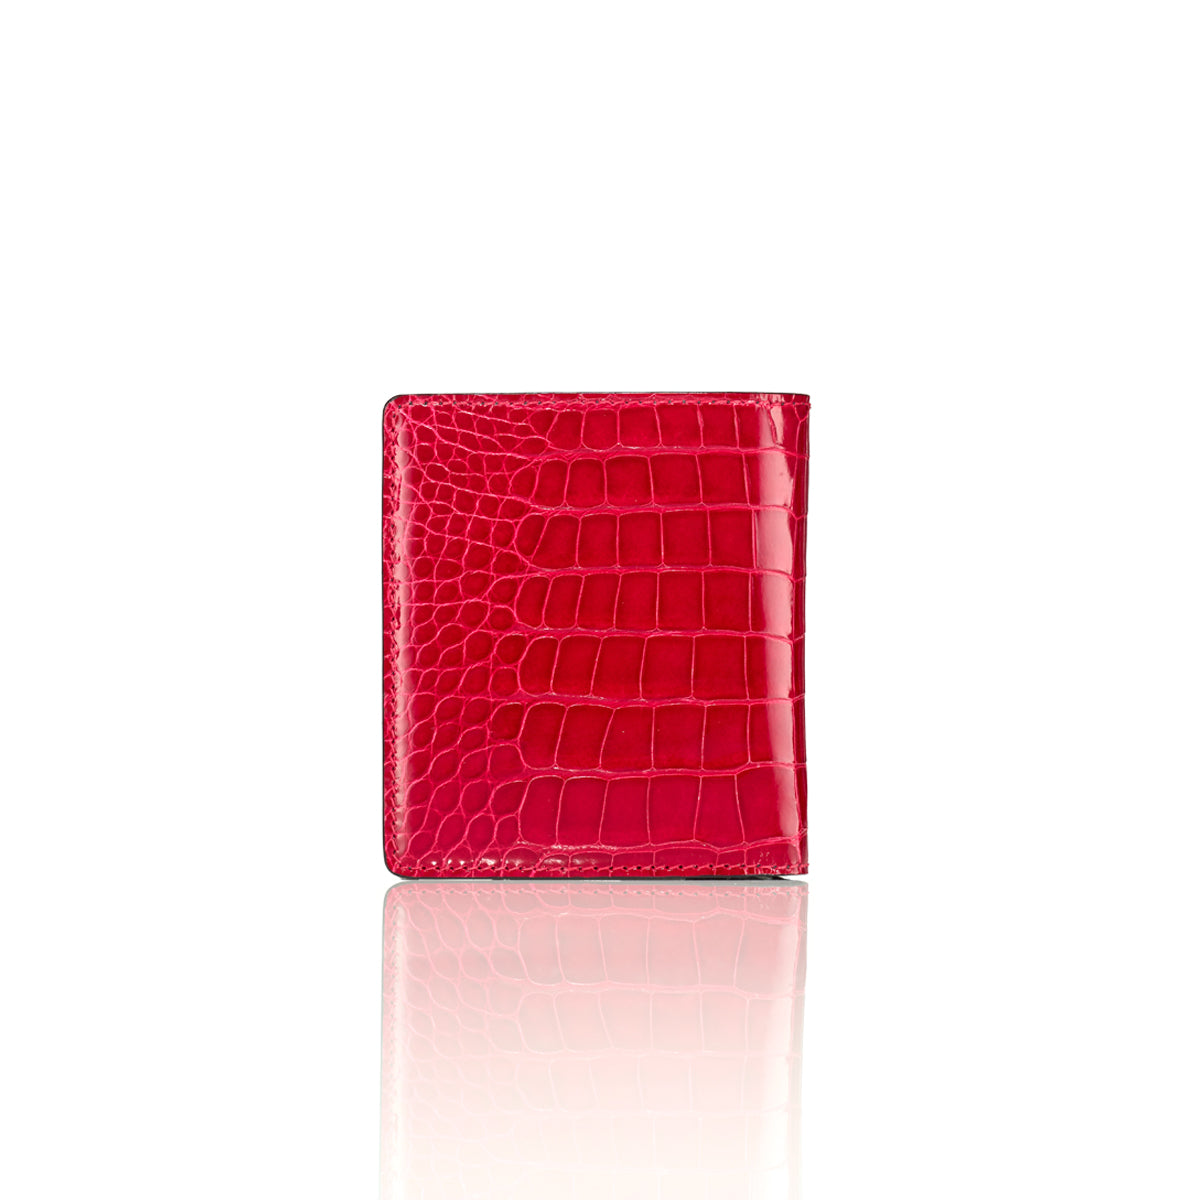 Bi-Fold Wallet - Cerise Alligator